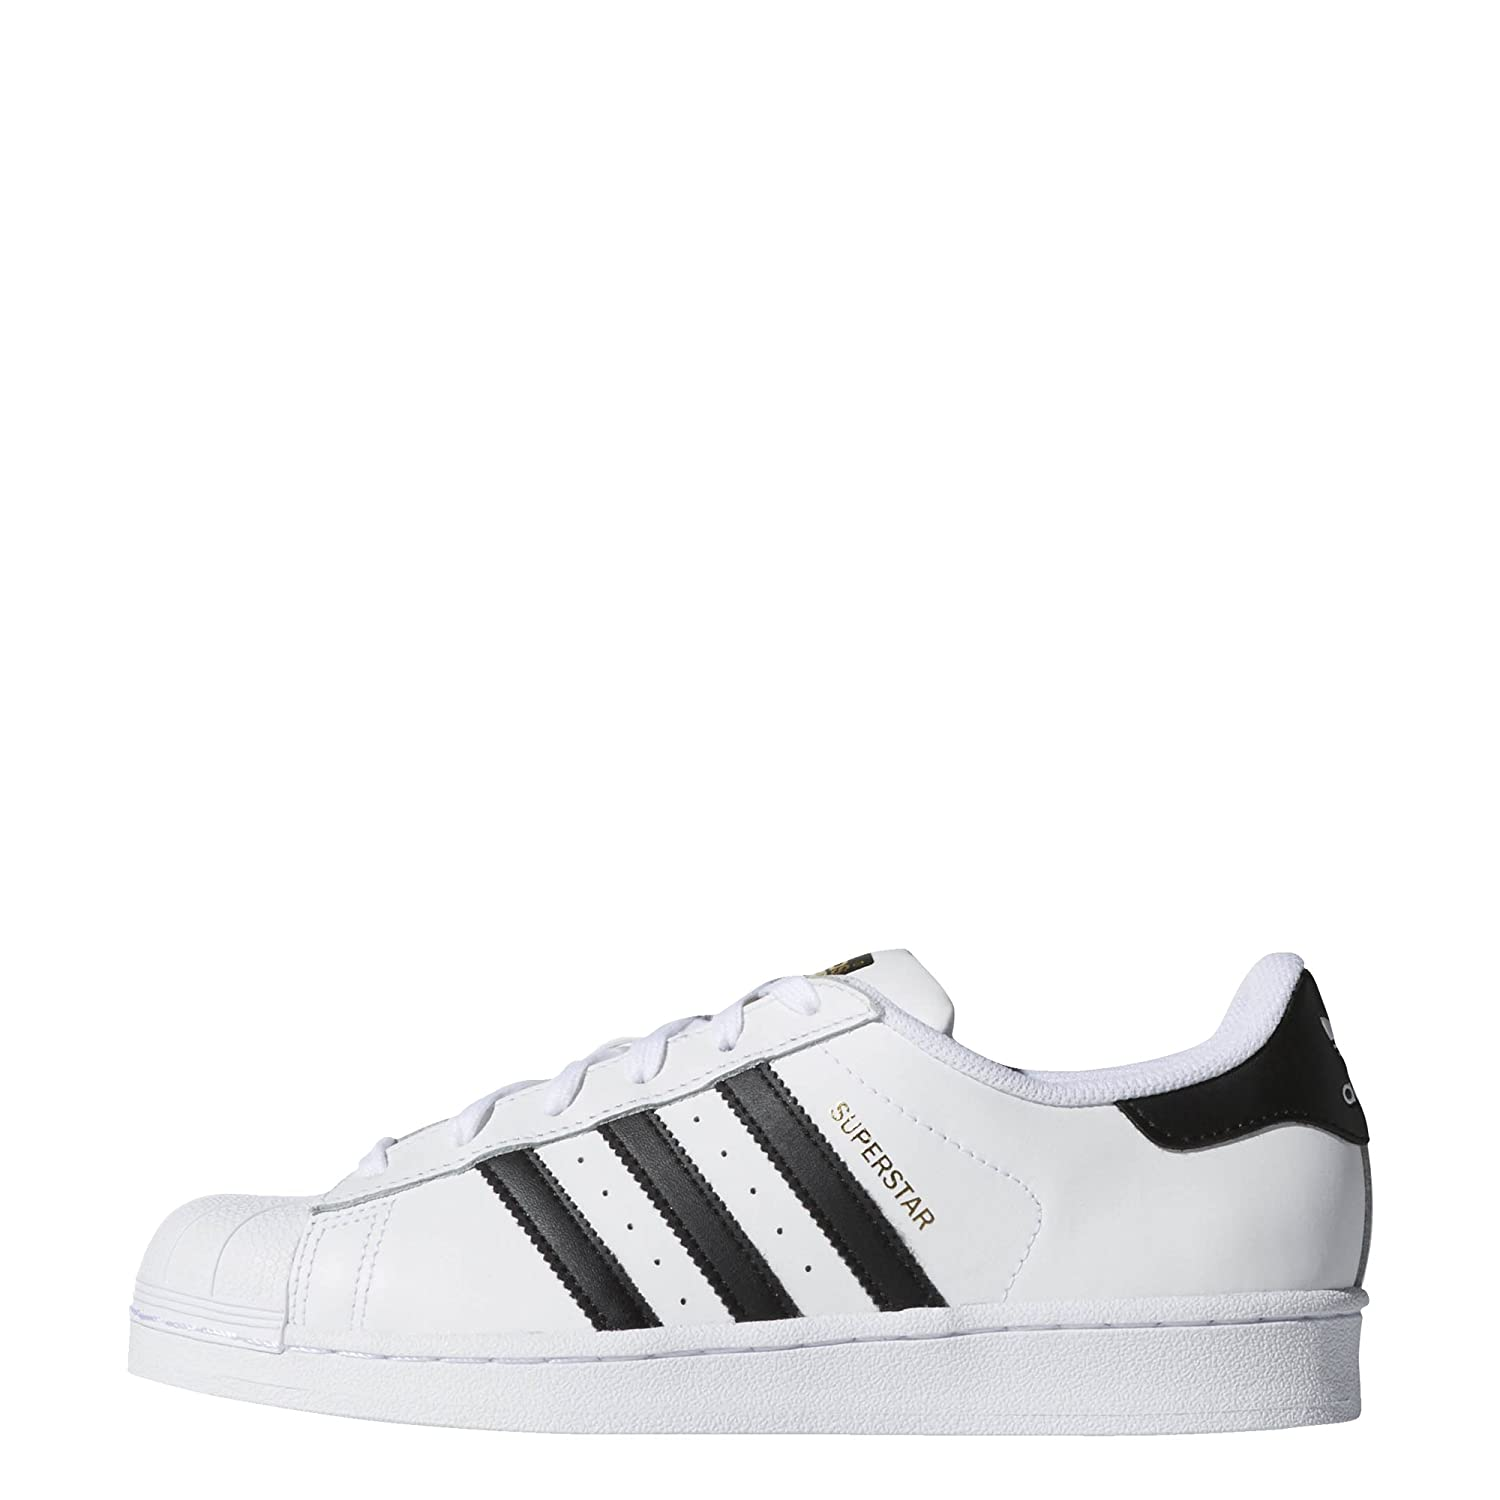 Adidas Originals Superstar W Sneakers Ftwr White